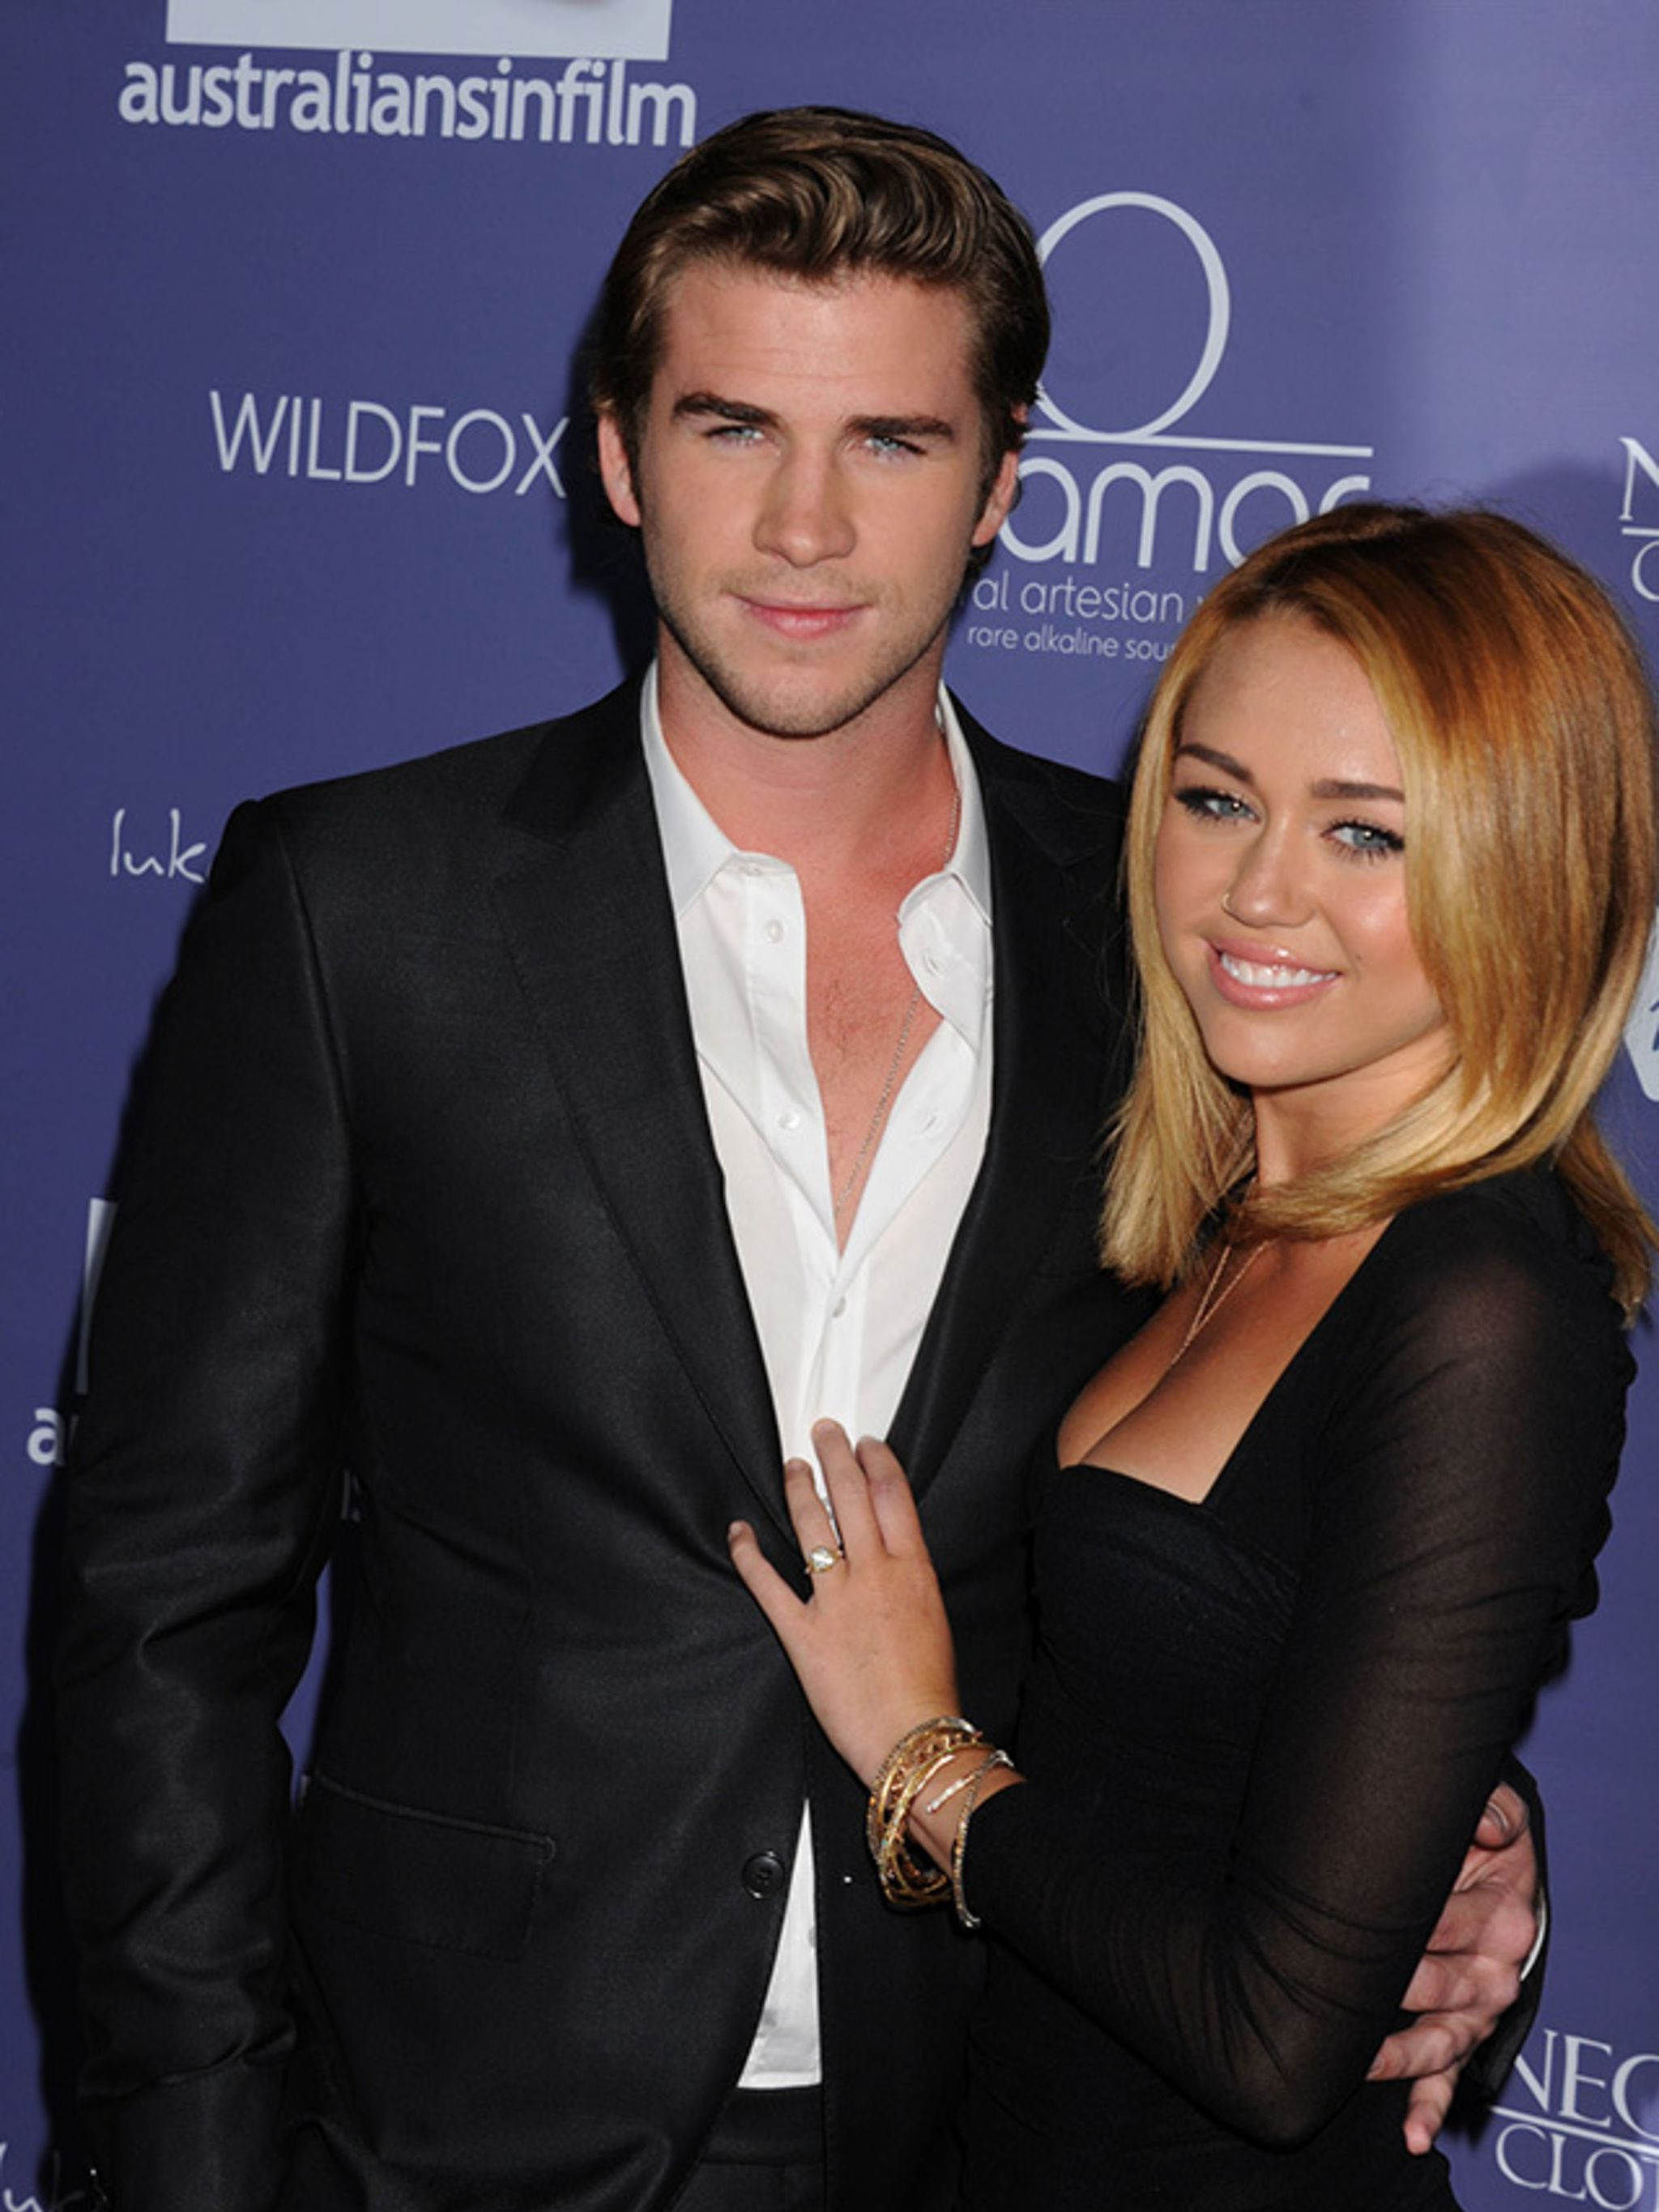 Liam Hemsworth dating geschiedenis